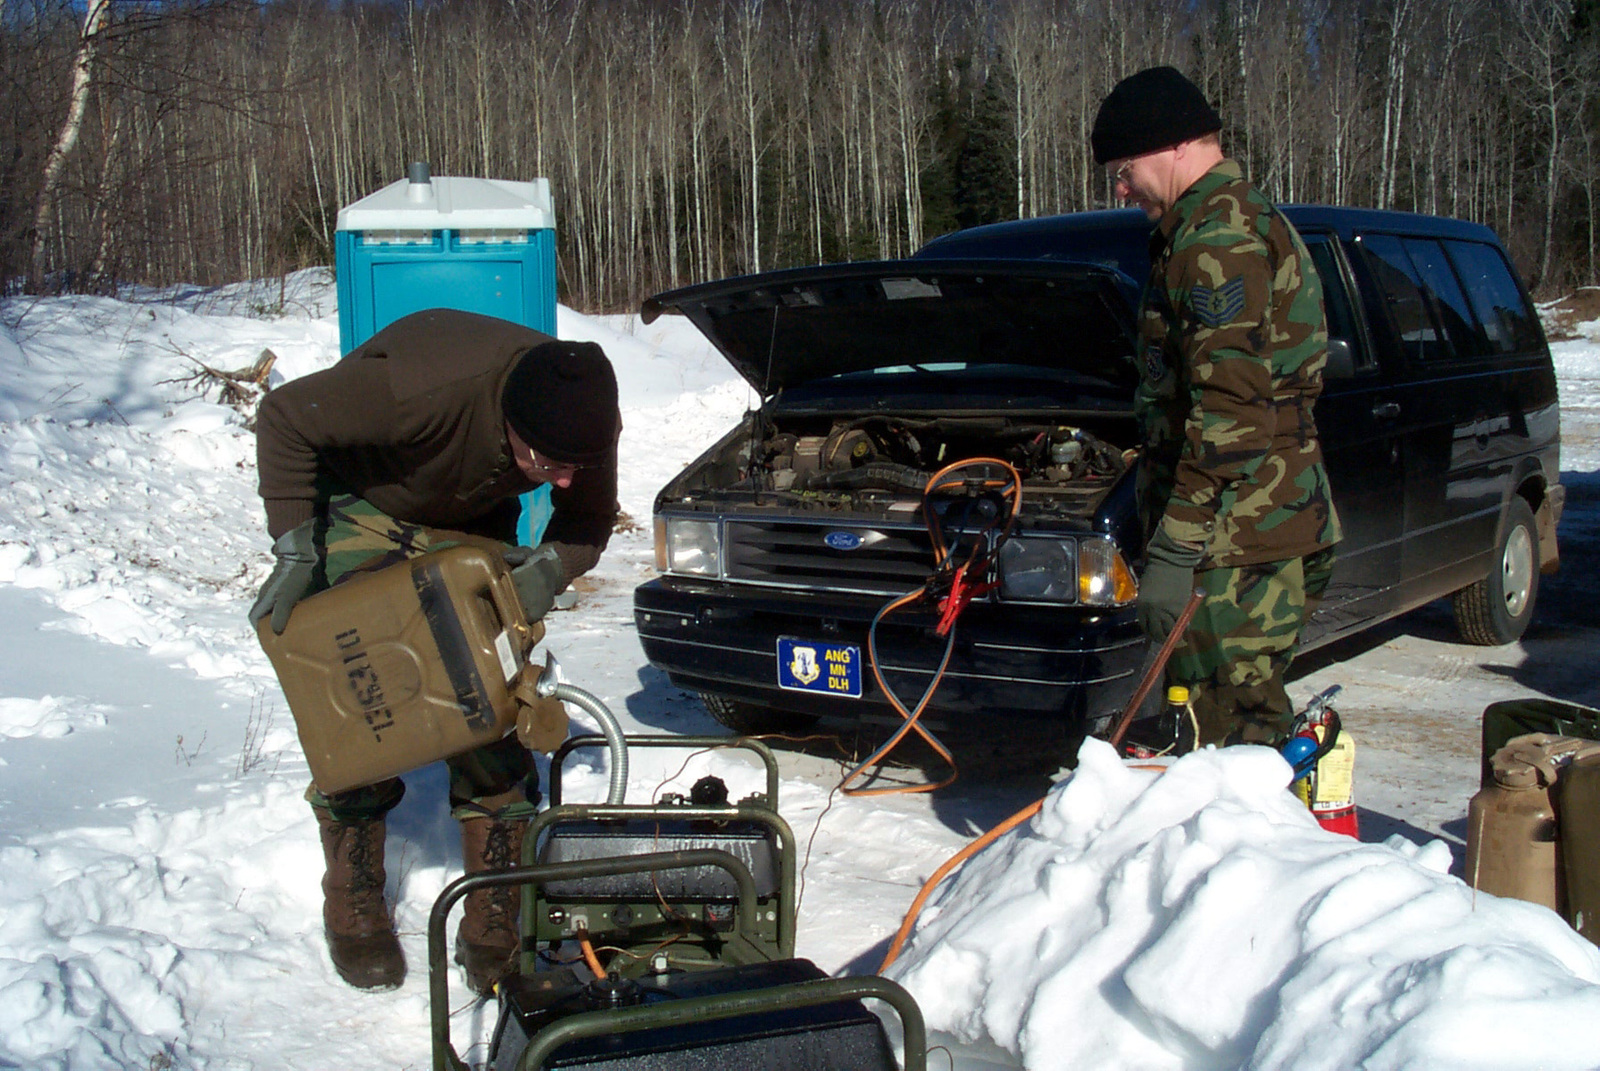 US Air Force (USAF) Technical Sergeant (TSGT) Everett Erickson (left) and USAF TSGT Rawn Nilsen, 148th Fighter Wing, Minnesota Air National Guard (ANG), refuel a portable generator at Pike Lake Crossing. The Guardsmen are checkpoint volunteers for the annual 400-mile John Beargrease Sled Dog Marathon held along the North Shore of Lake Superior, Minnesota (MN)